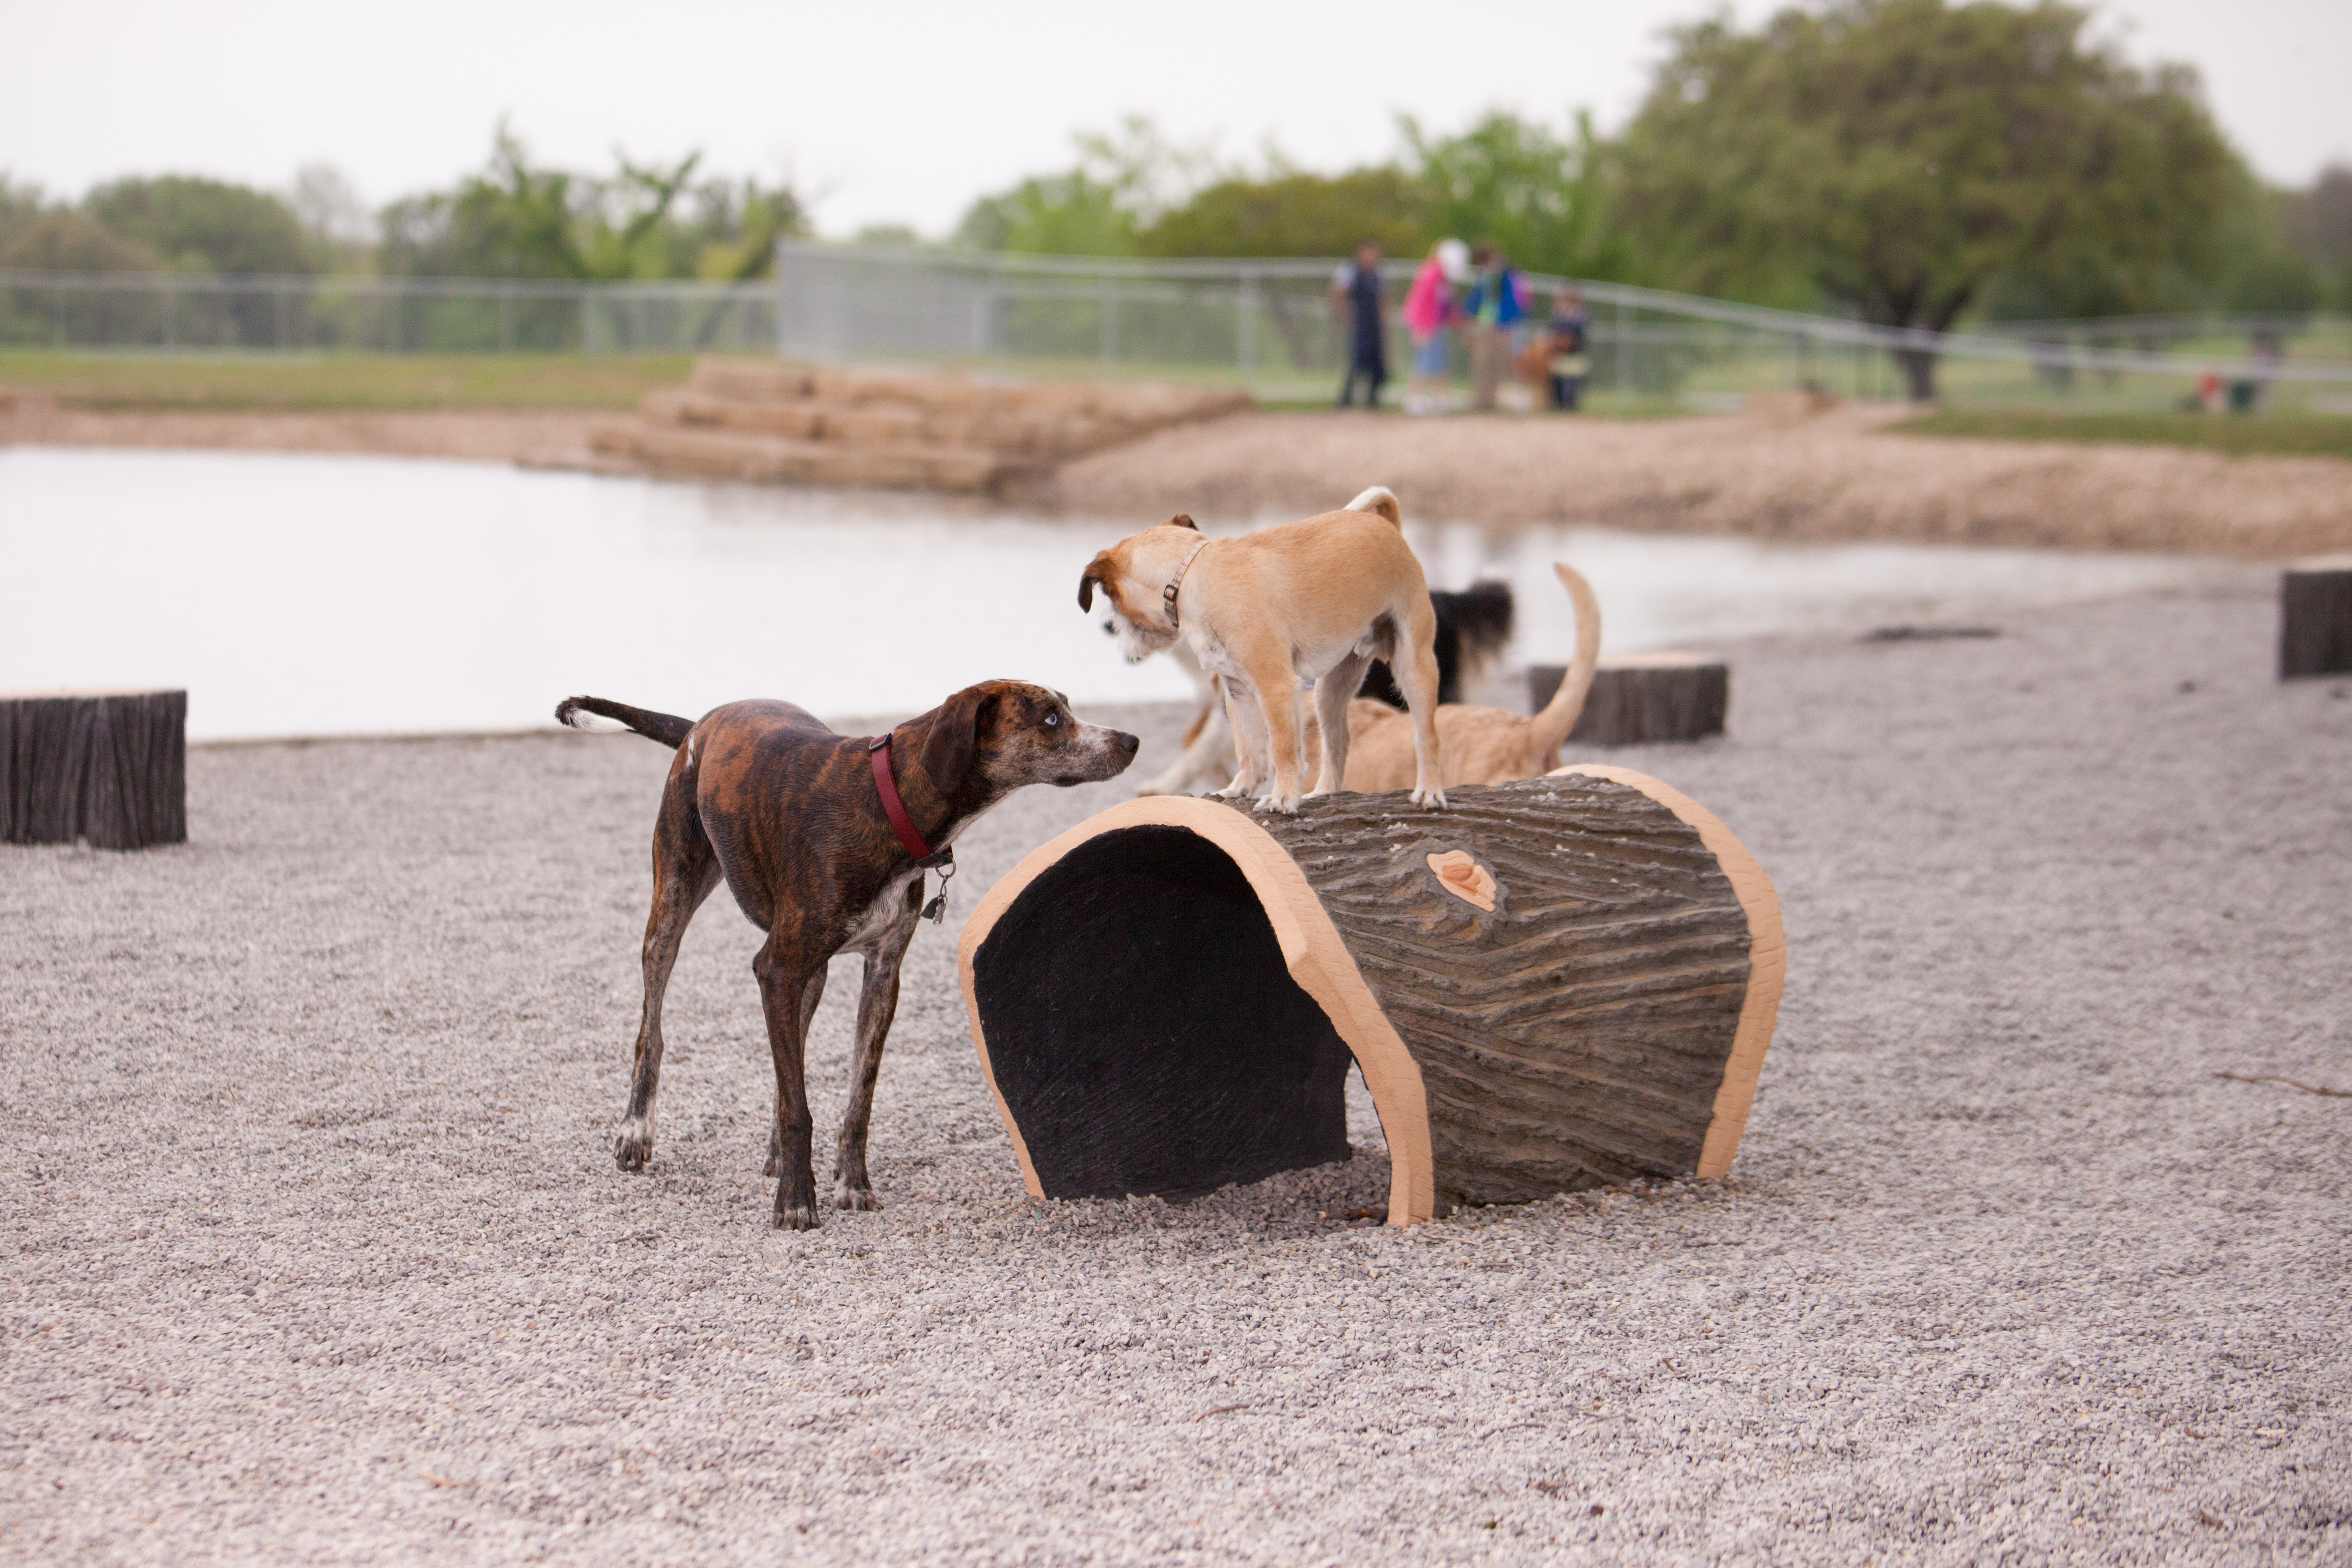 c73af022c9e Hopefully these tips will make the dog park a happier place for both you  and your pup. Woof!